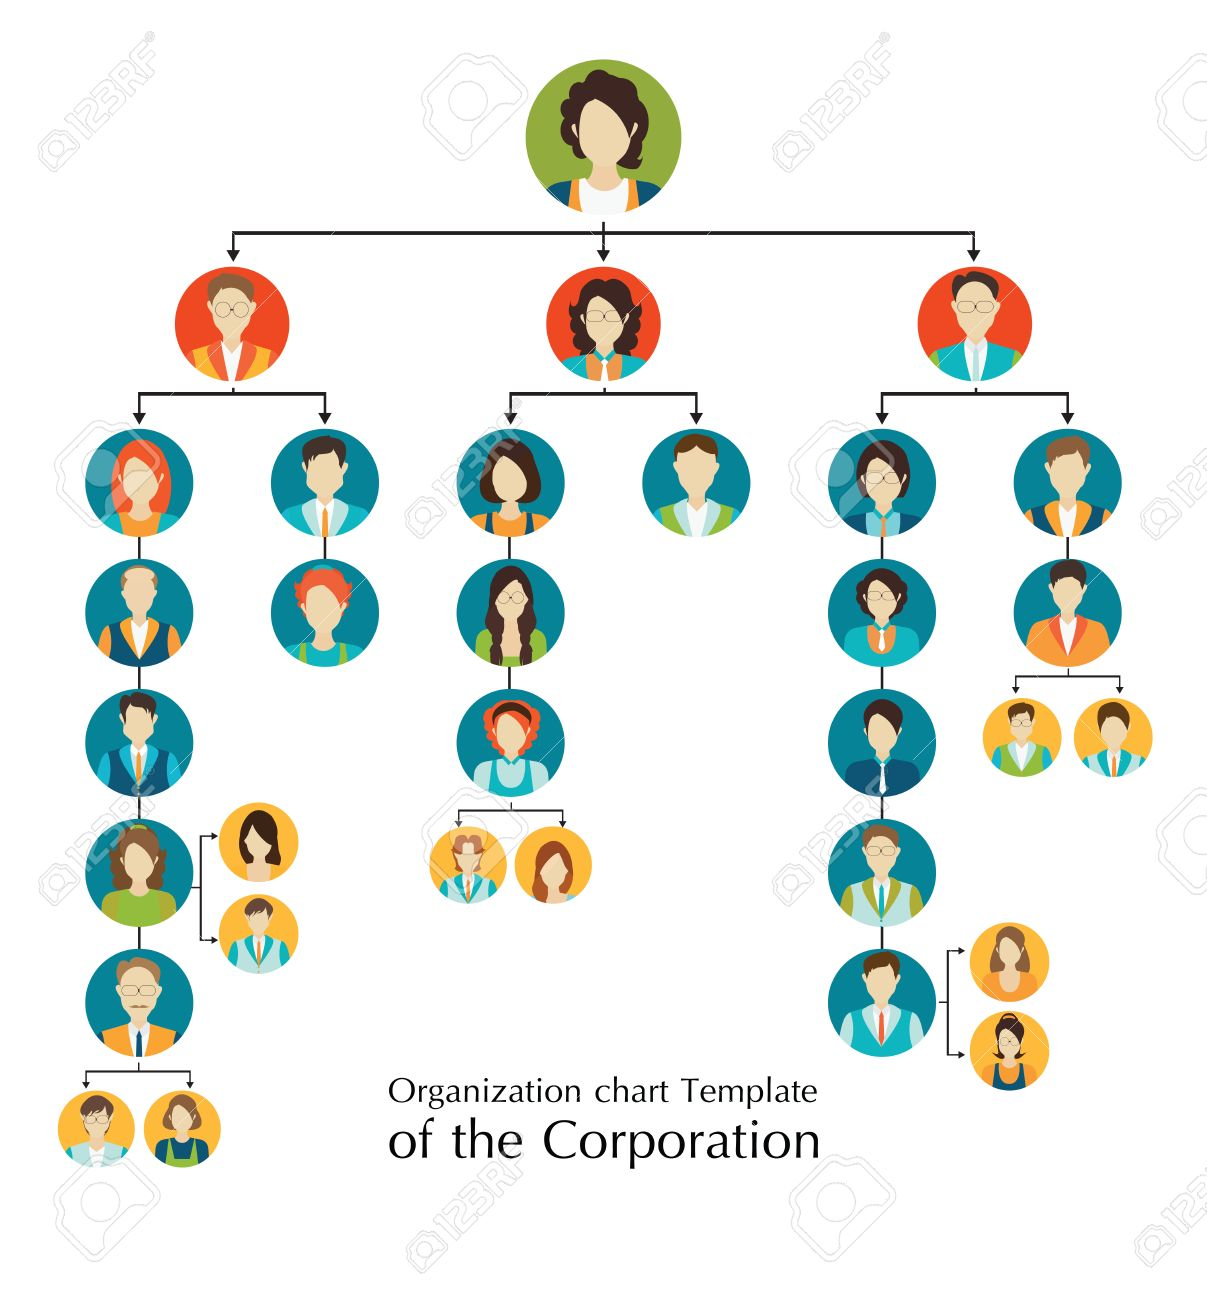 Organizational chart template of the corporation business hierarchy organizational chart template of the corporation business hierarchy people structure character cartoon business people accmission Image collections